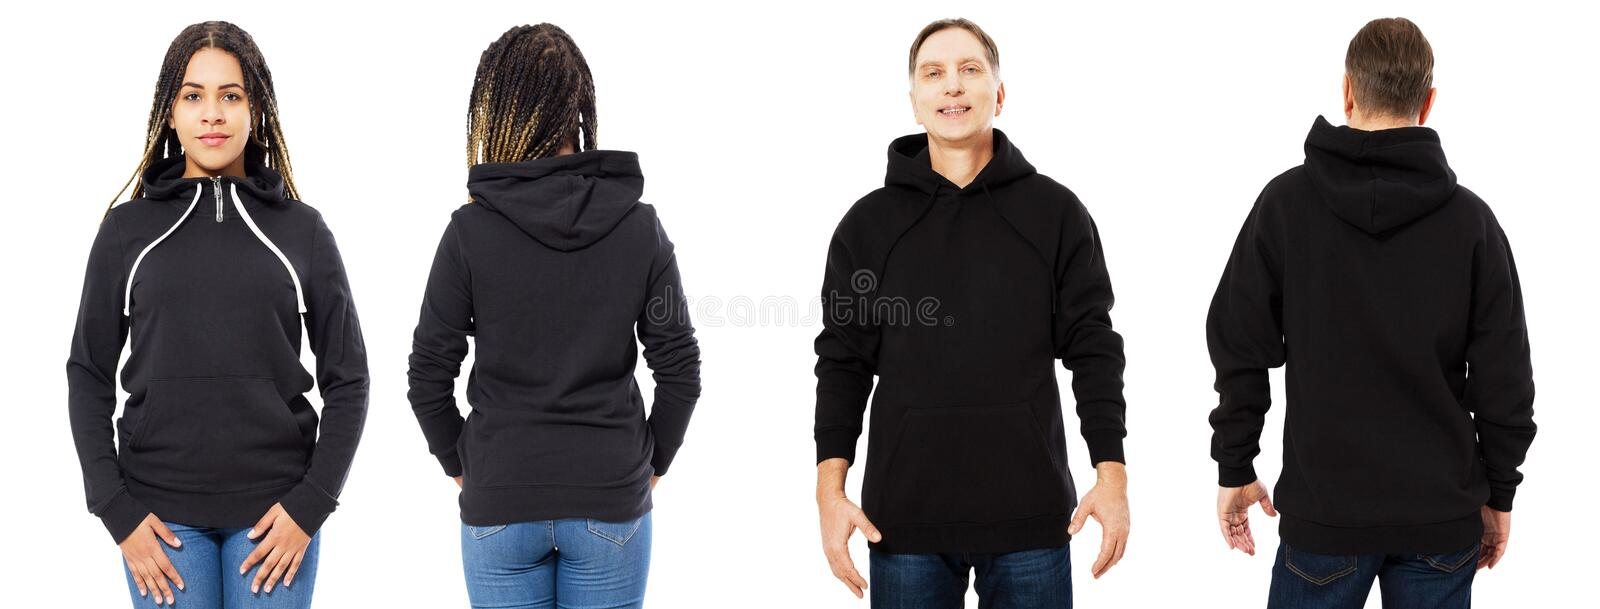 Afro american girl in black hoodie front and back view, man in black sweatshirt set collage isolated on white background, hood royalty free stock images